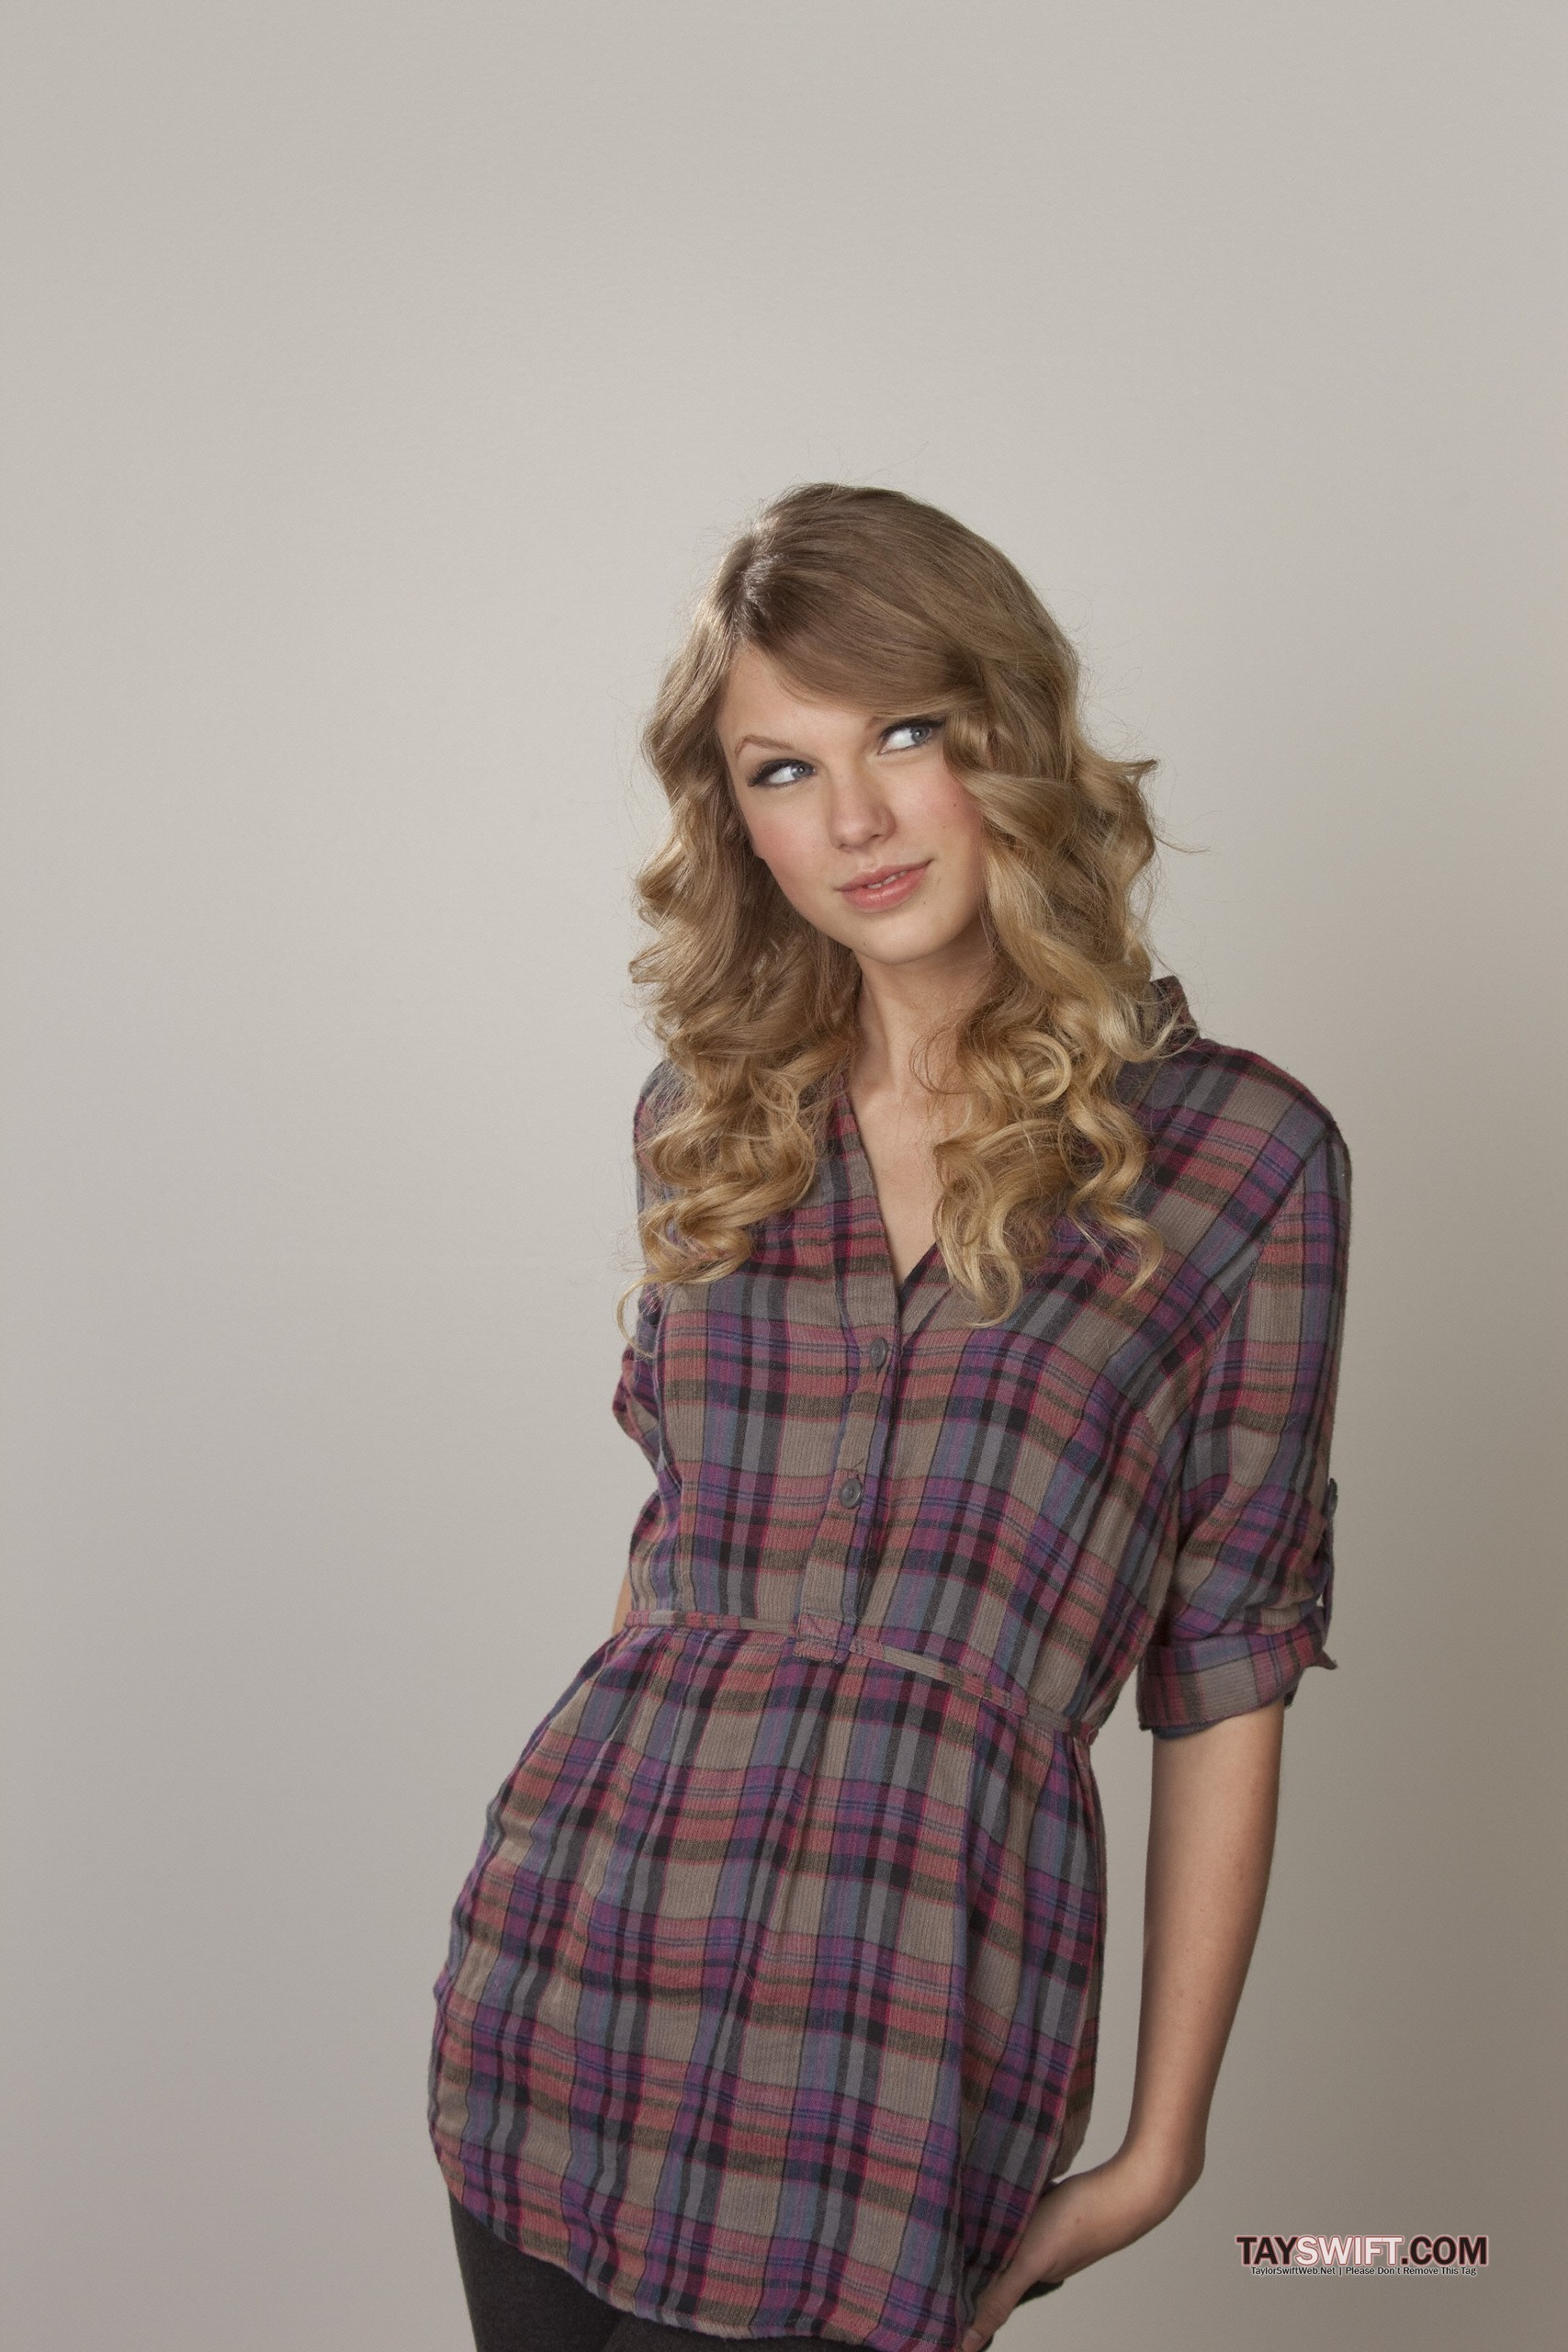 Taylor Swift Valentine S Day Promoshoot 2010